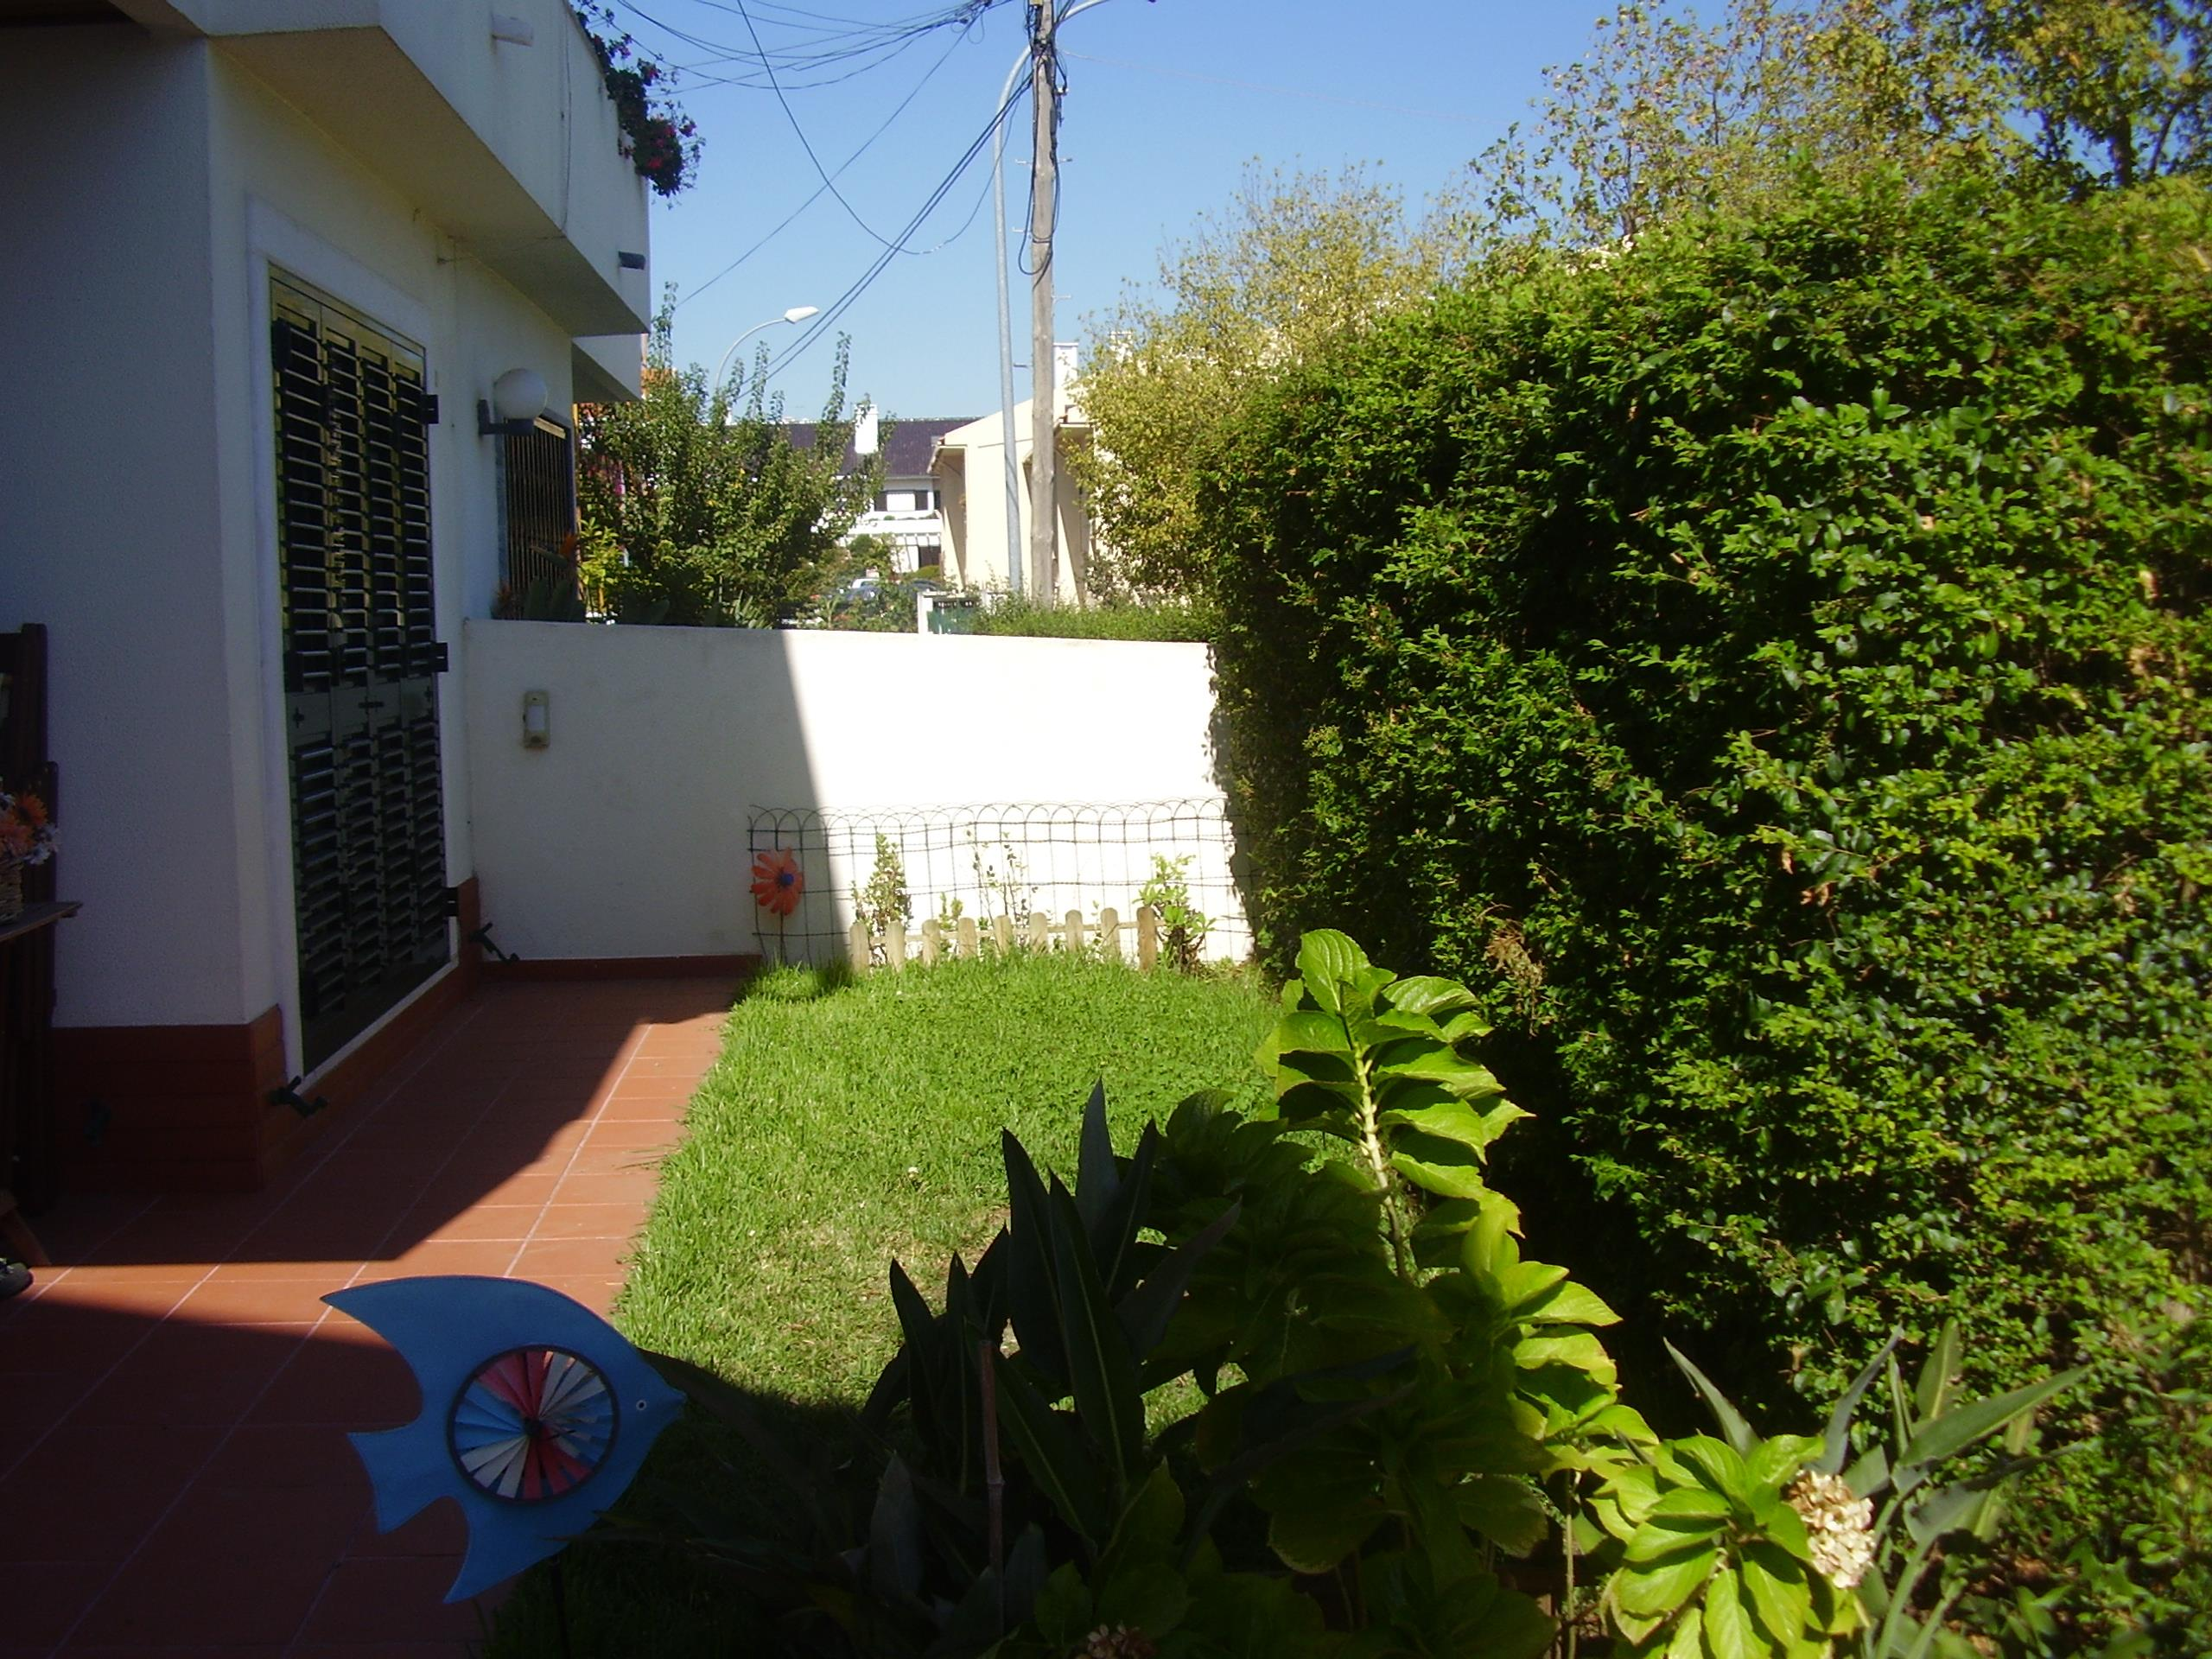 Single Family Home for Sale at Semi-detached house, 6 bedrooms, for Sale Oeiras, Lisboa, Portugal